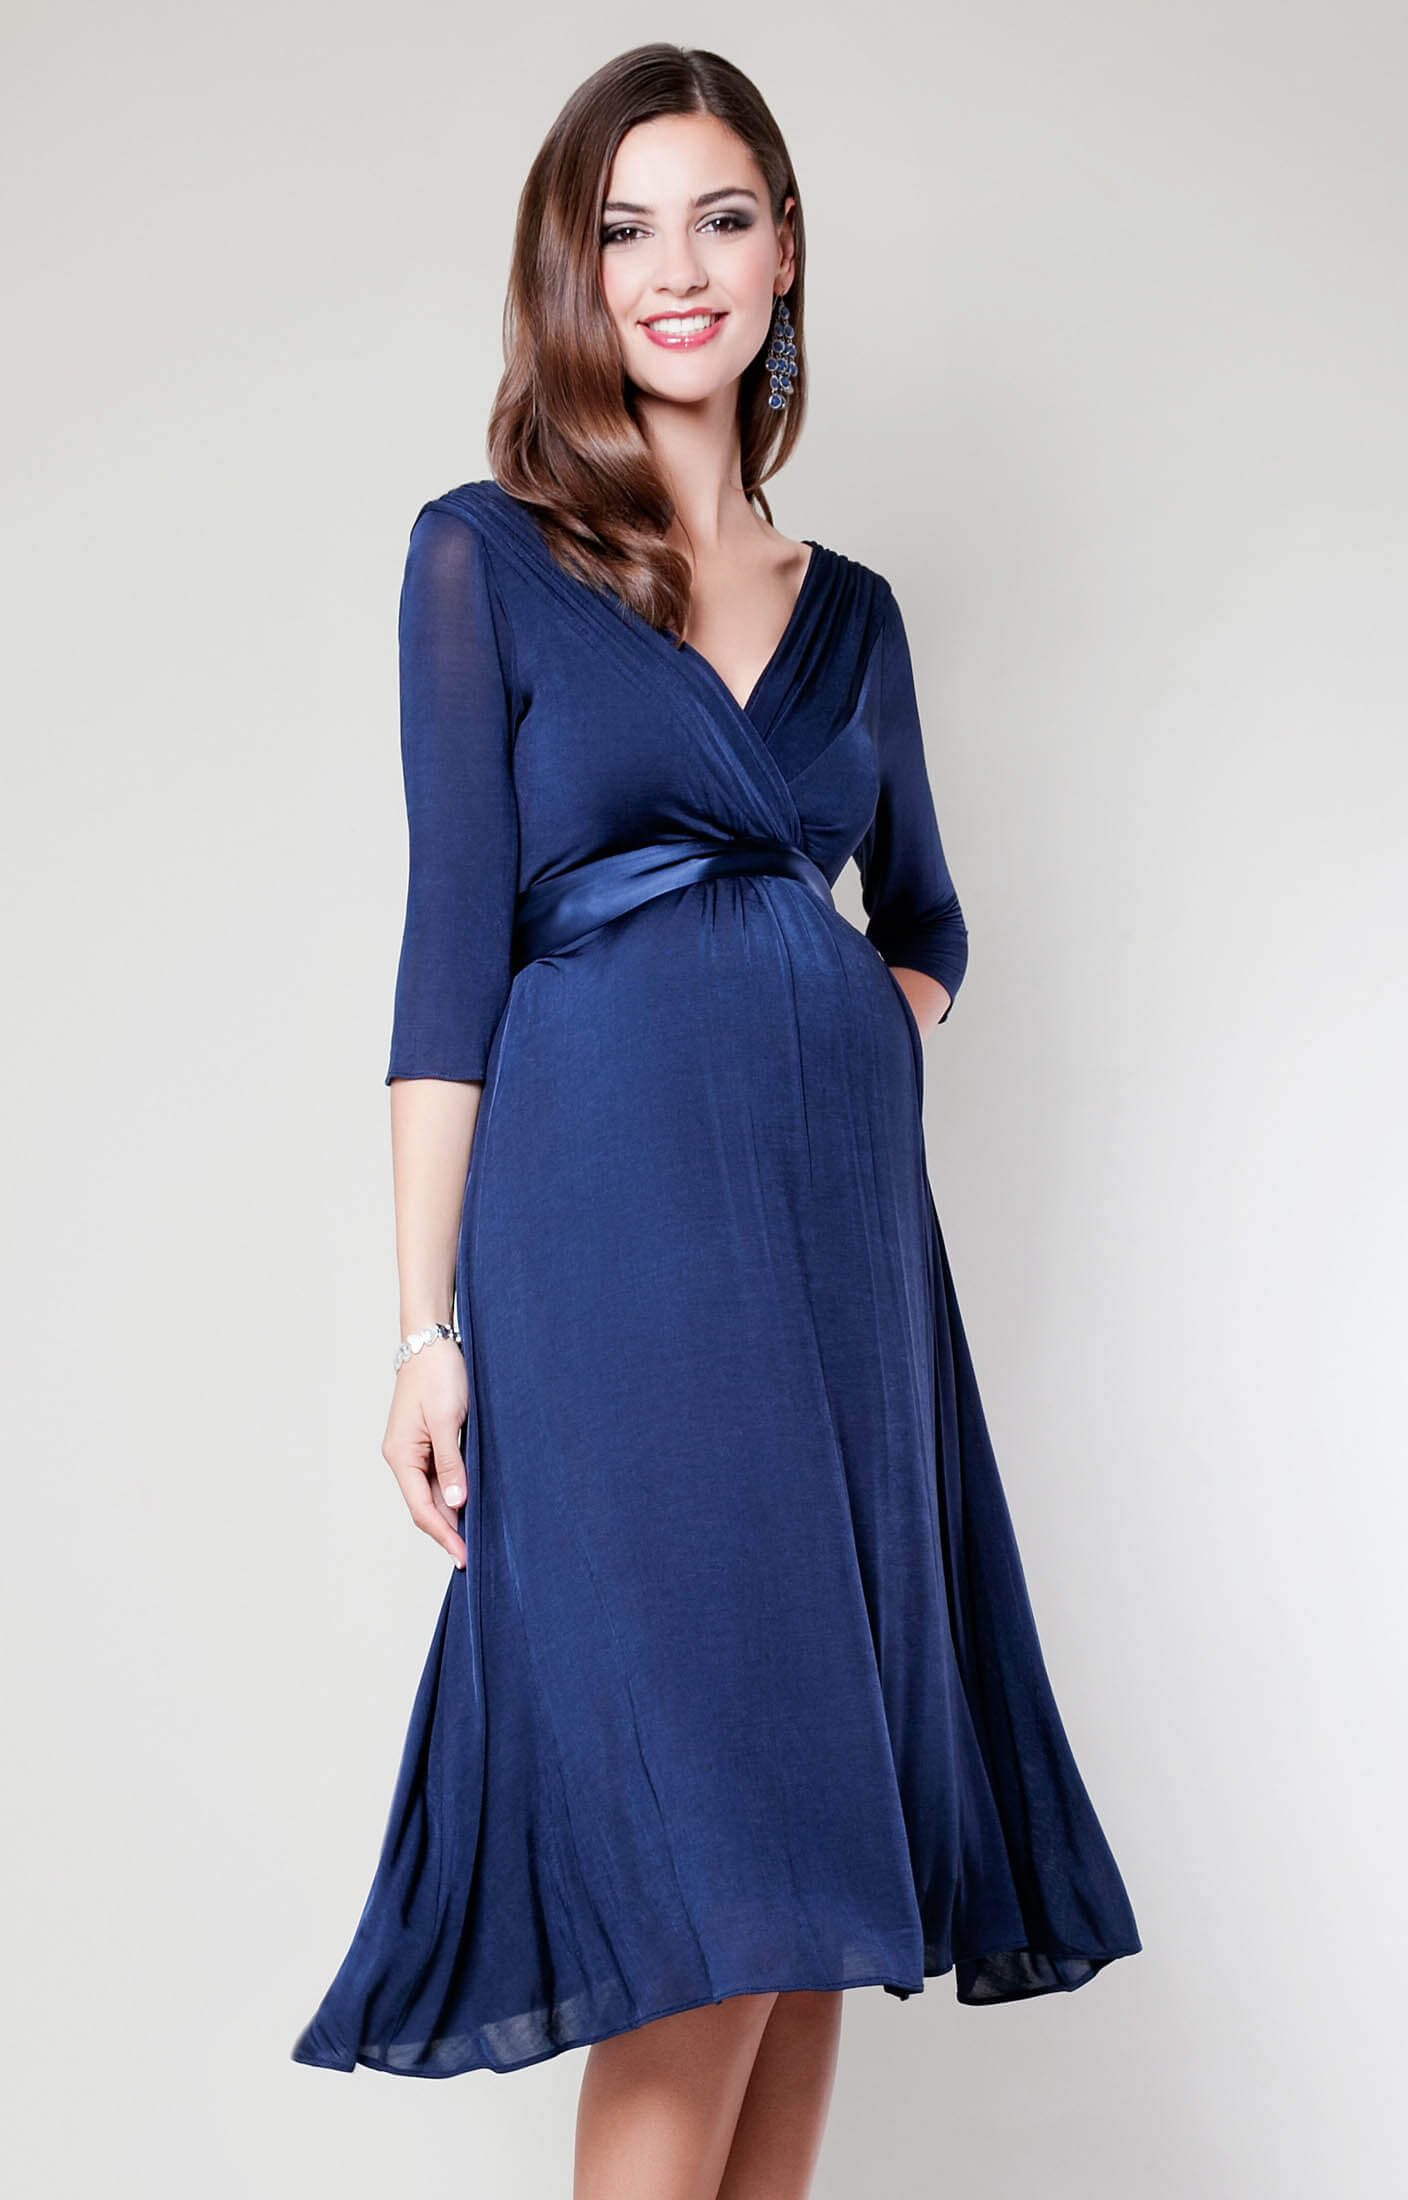 Navy blue evening wear dresses